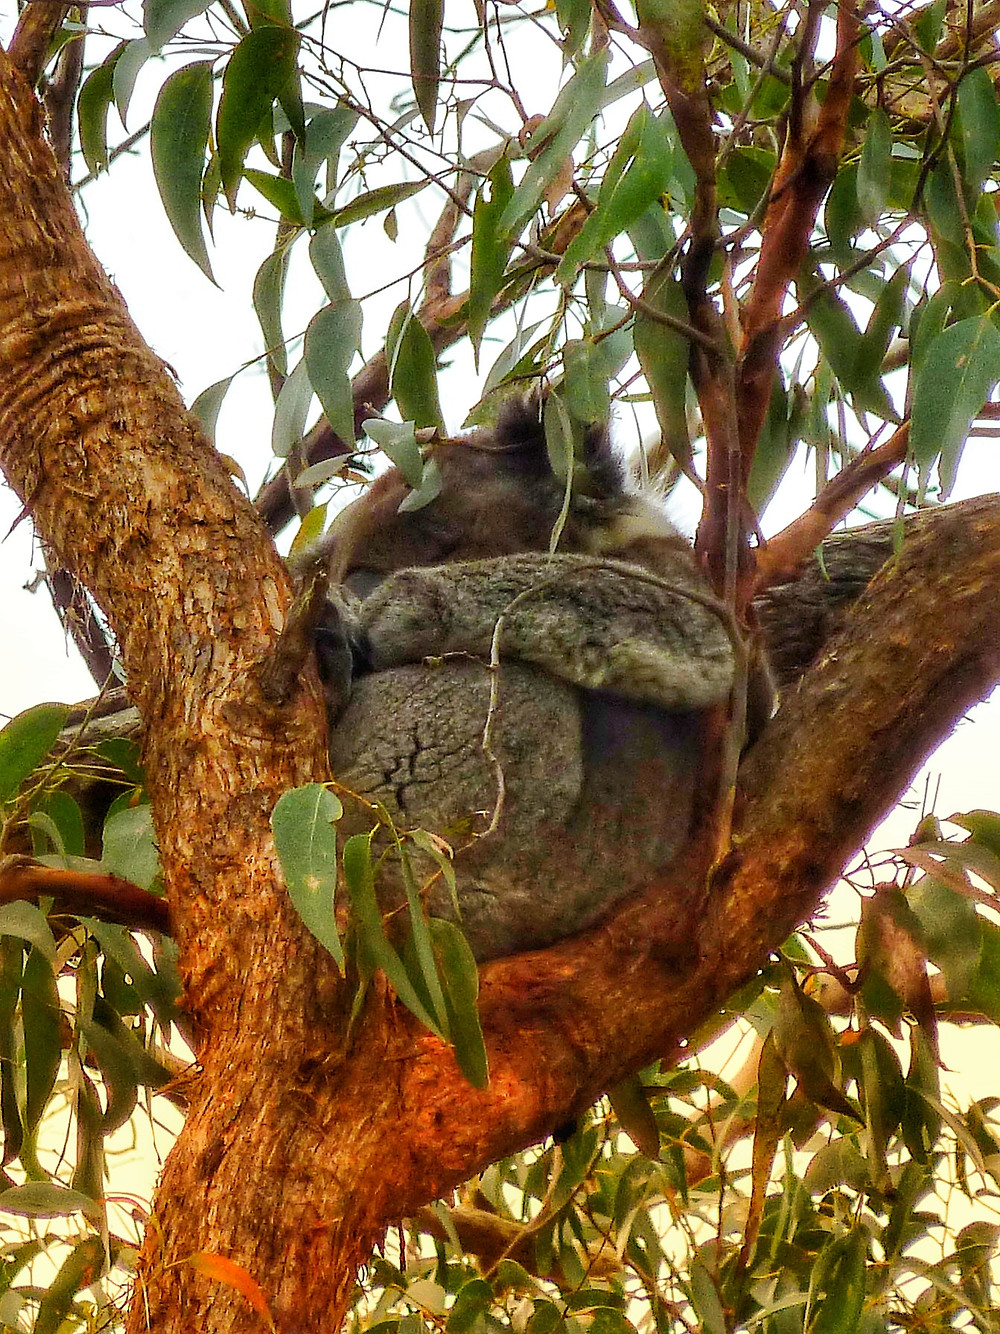 Drop bear sleeping